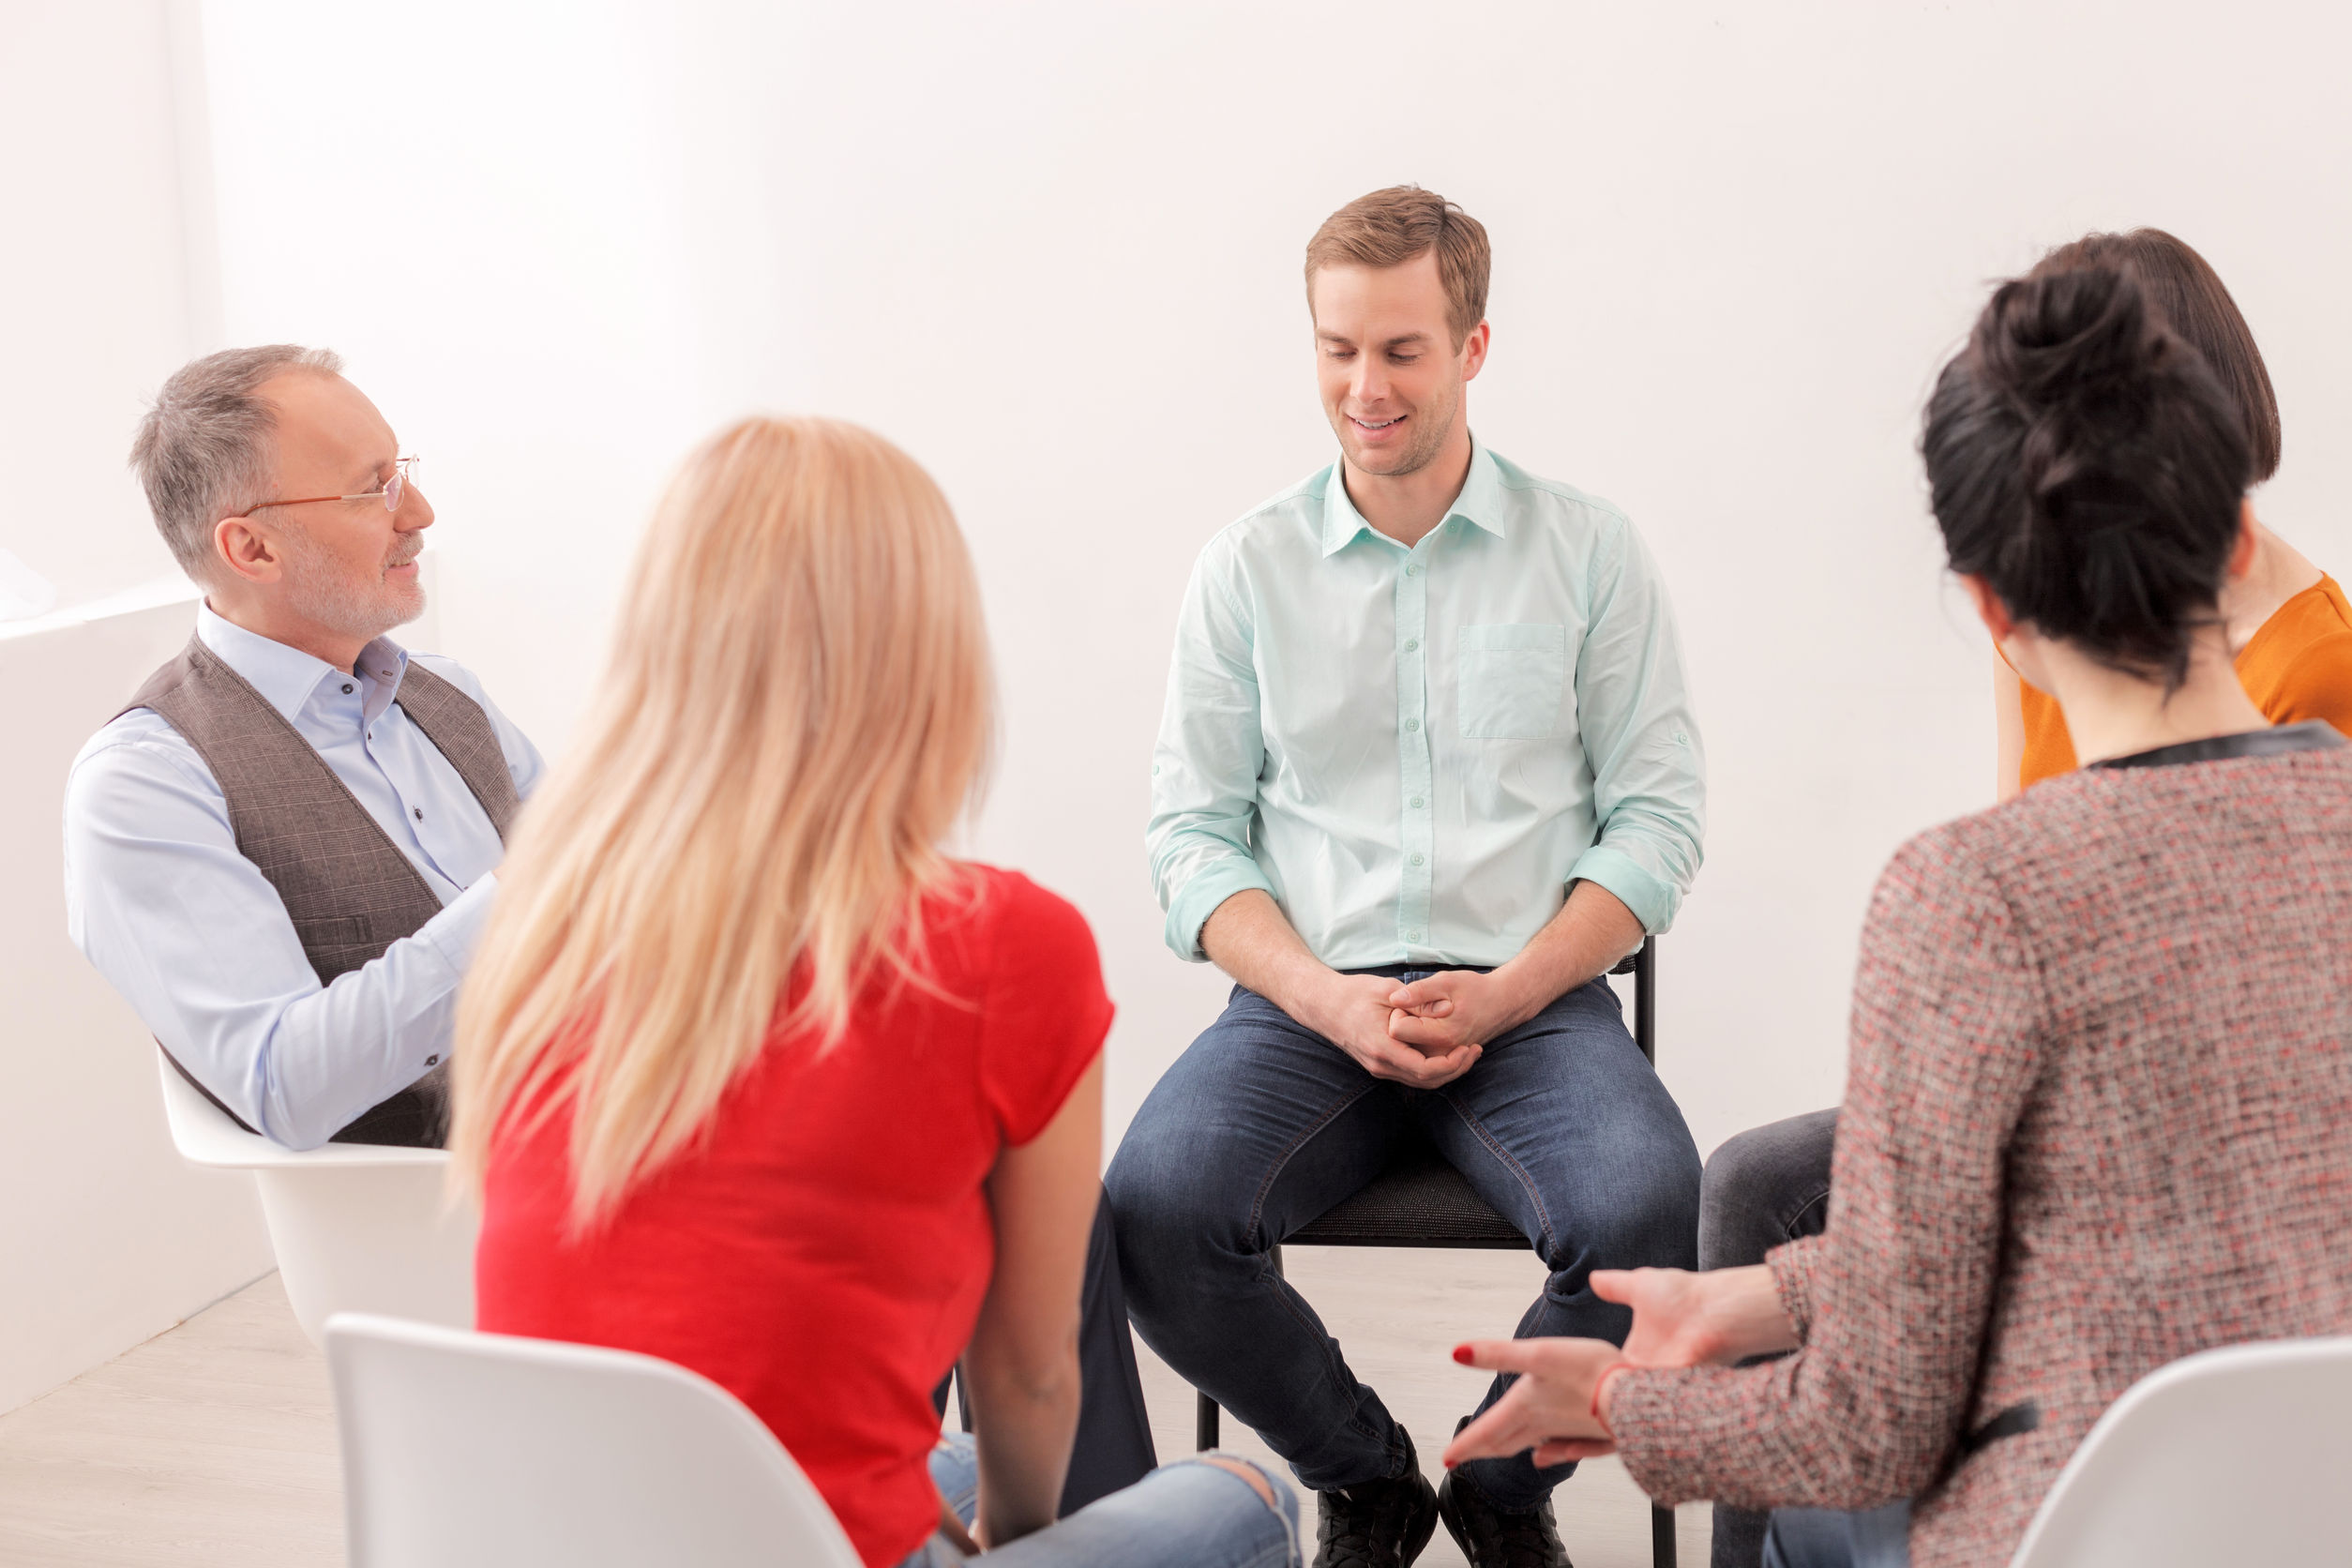 57363091 - attractive young man is sharing his feelings with psychologist and group. he is sitting and smiling. women are listening with joy